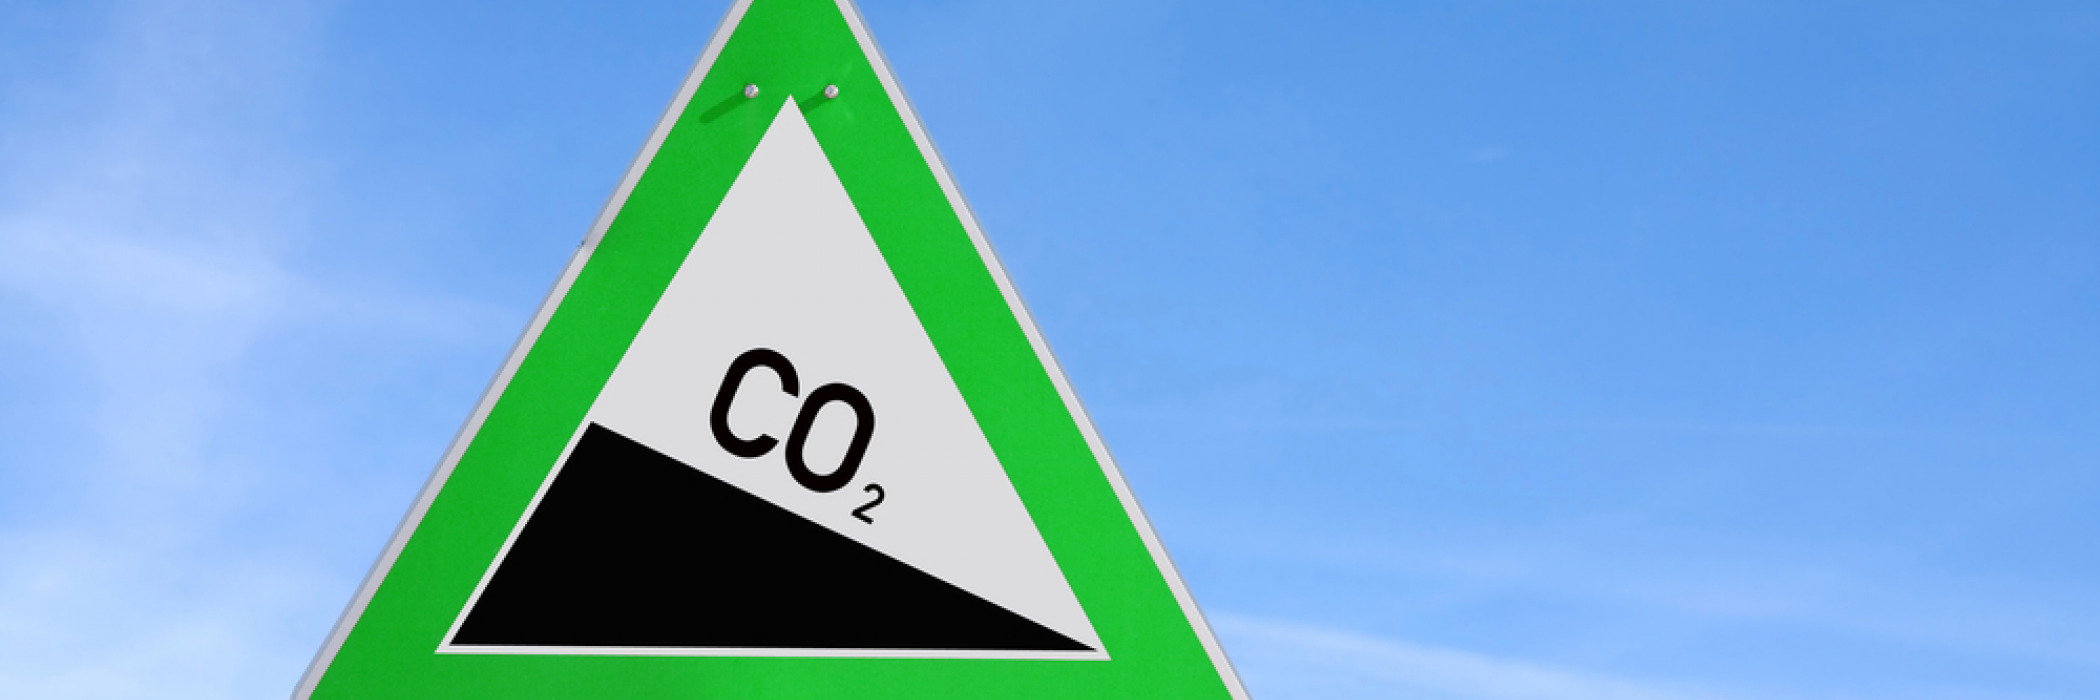 CO2 emissions shutterstock hfuchs